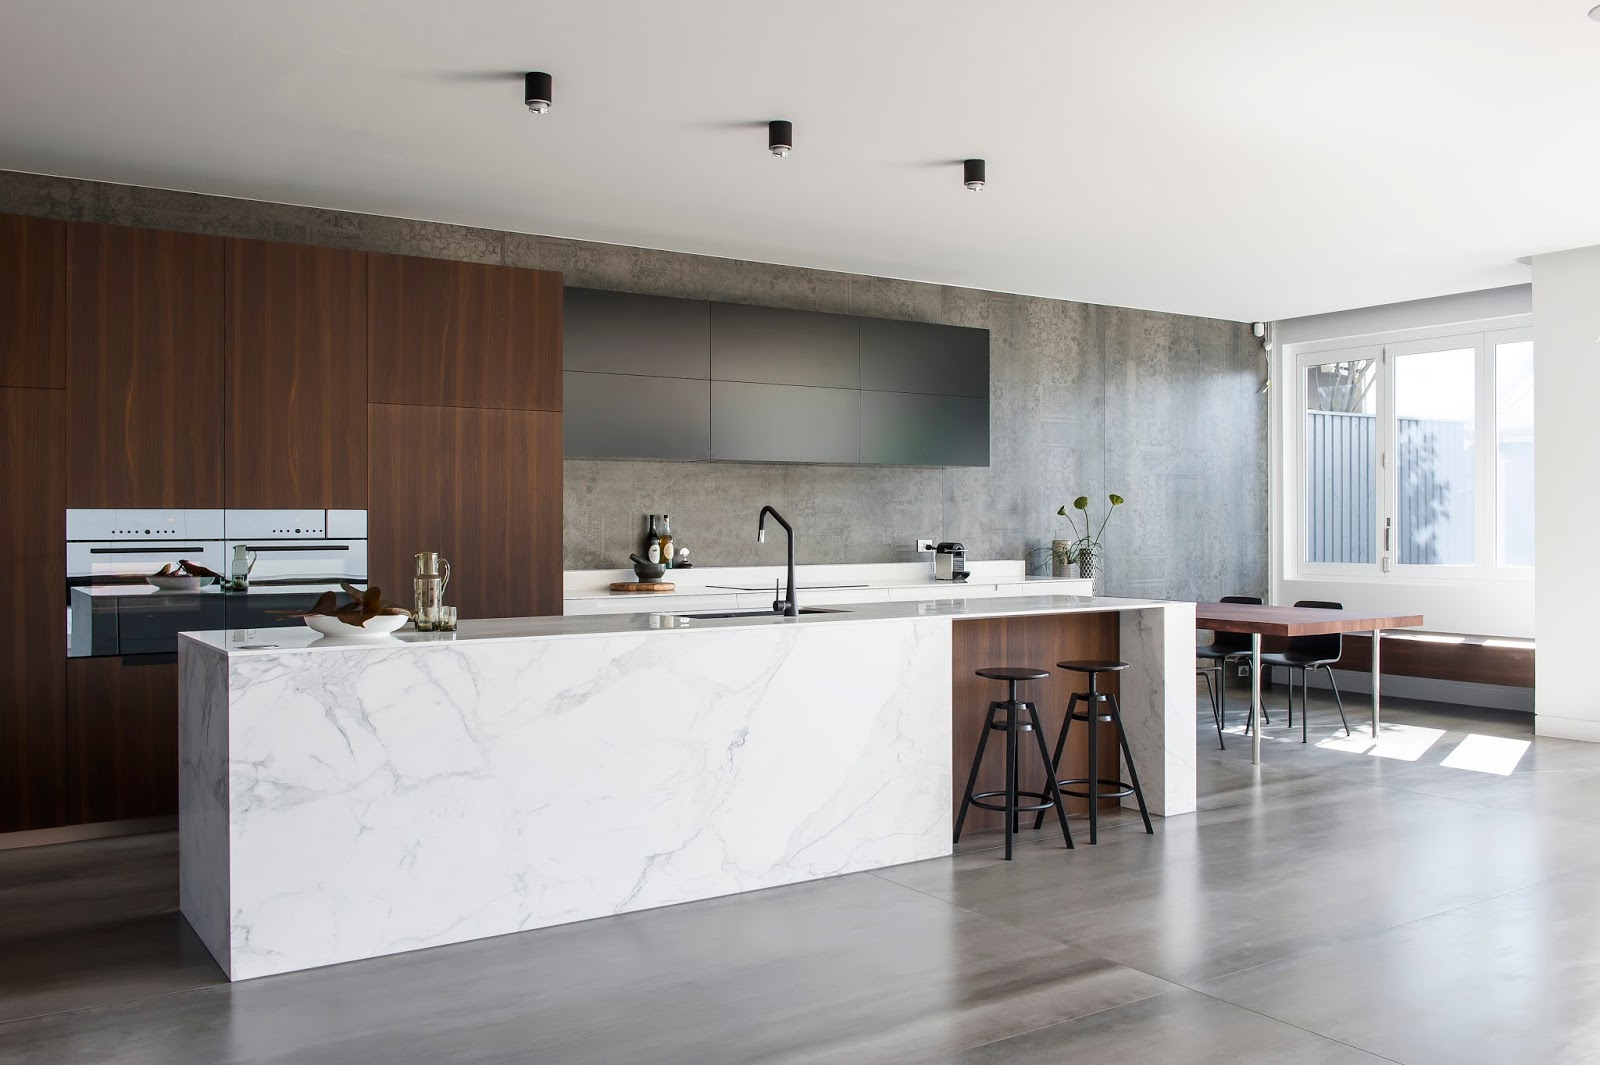 Minosa amazing kitchen design leaves us with house envy for Kitchen design awards